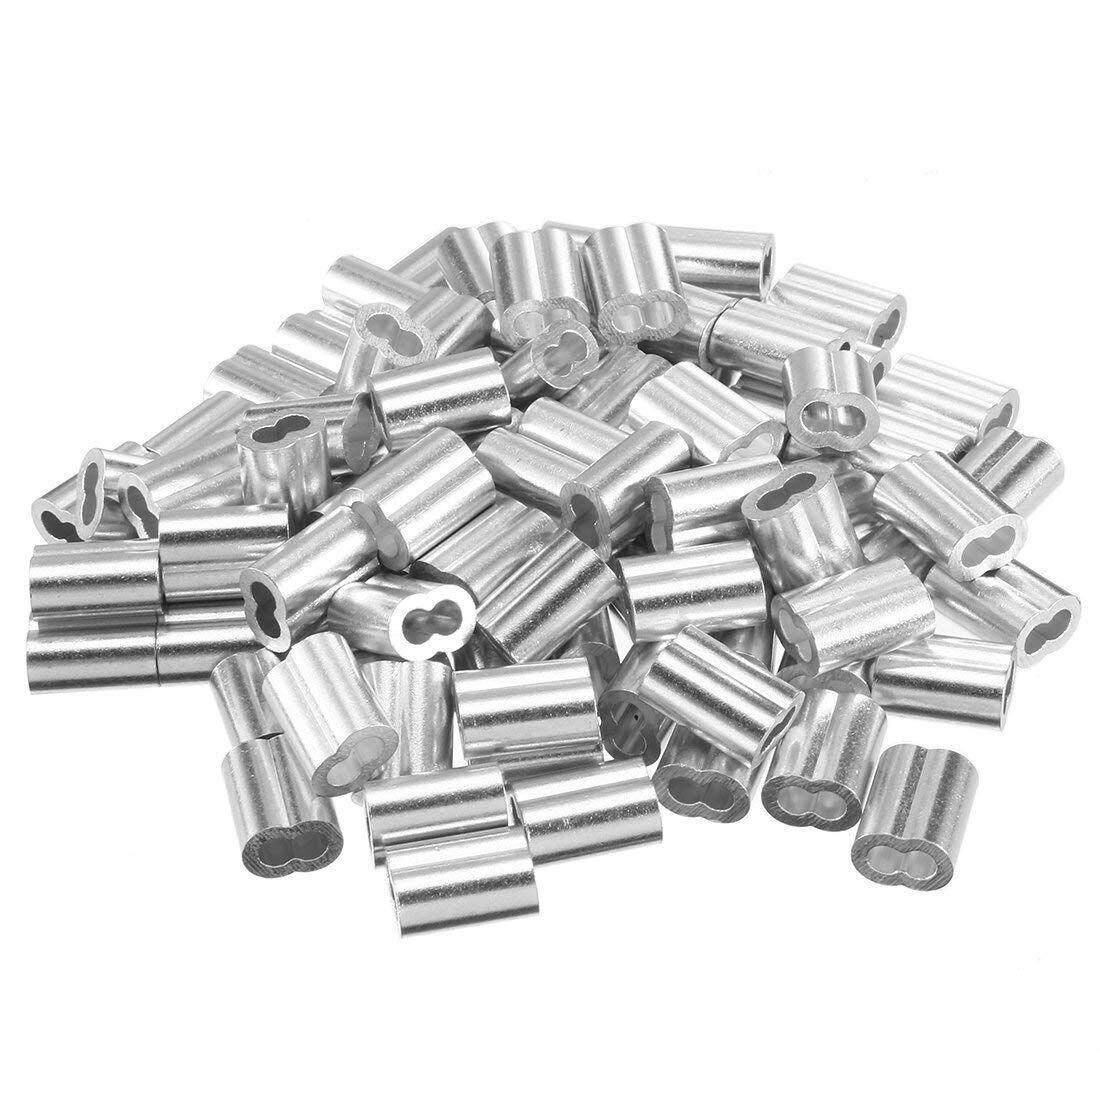 5/64 inch (2mm) Diameter Wire Rope Aluminum Sleeves Clip Fittings Cable Crimps 100pcs